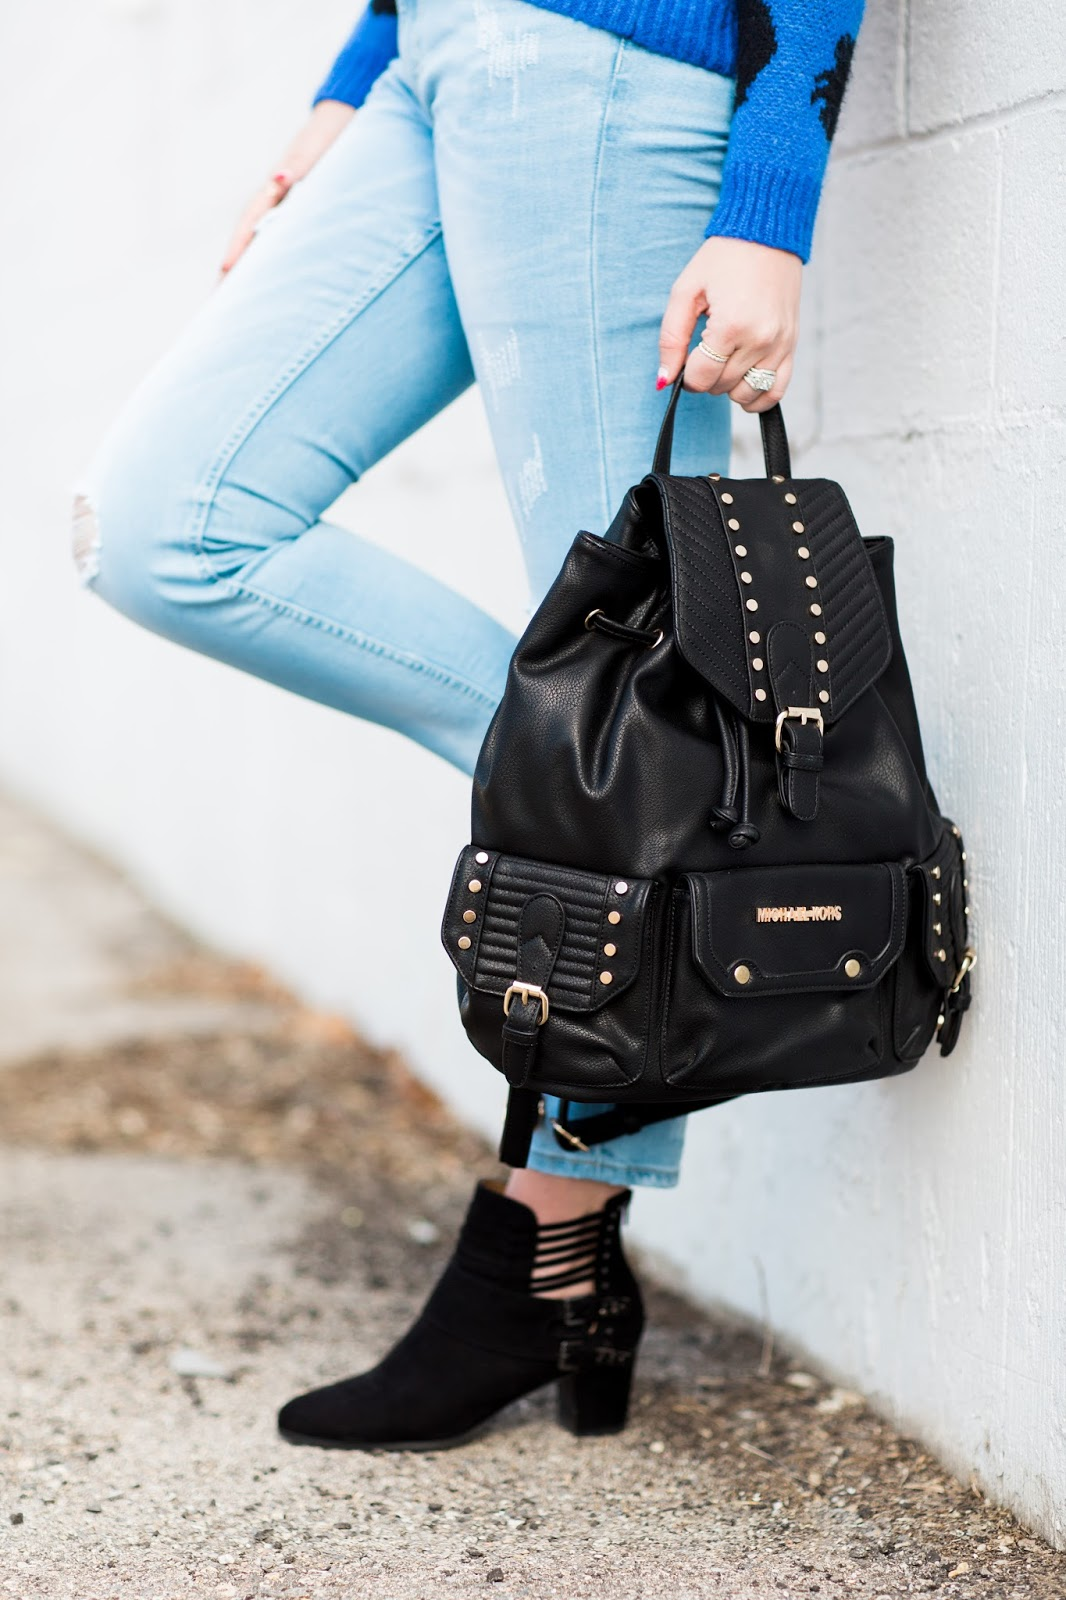 Michael Kors, Studded Backpack, ASOS jeans